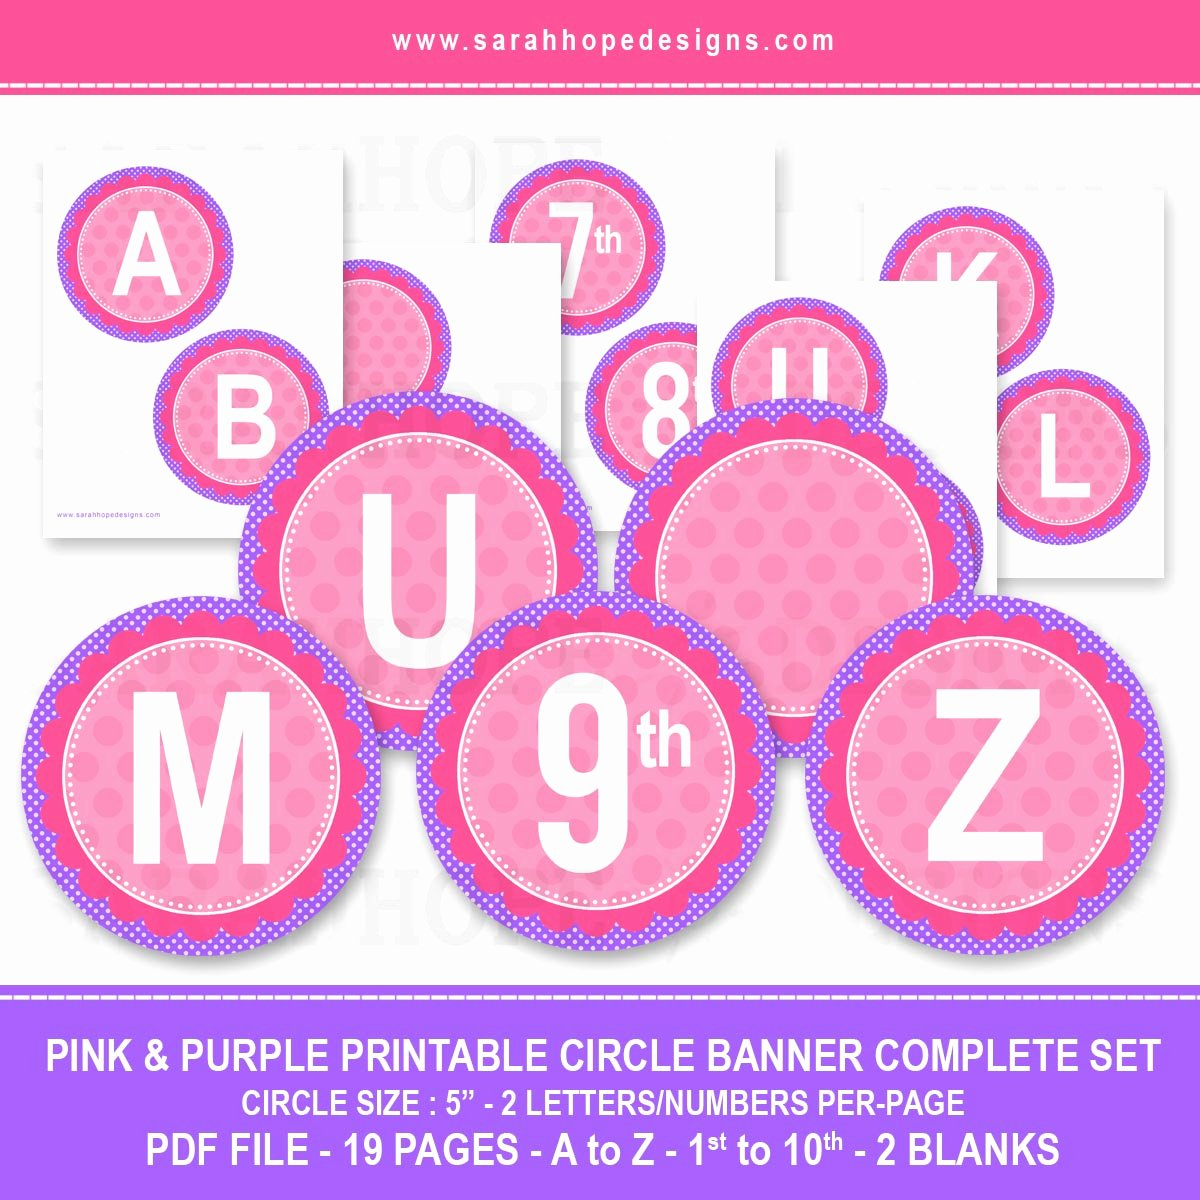 Printable Letter Banners New Spell Out Anything with these Free Alphabet Circle Banners